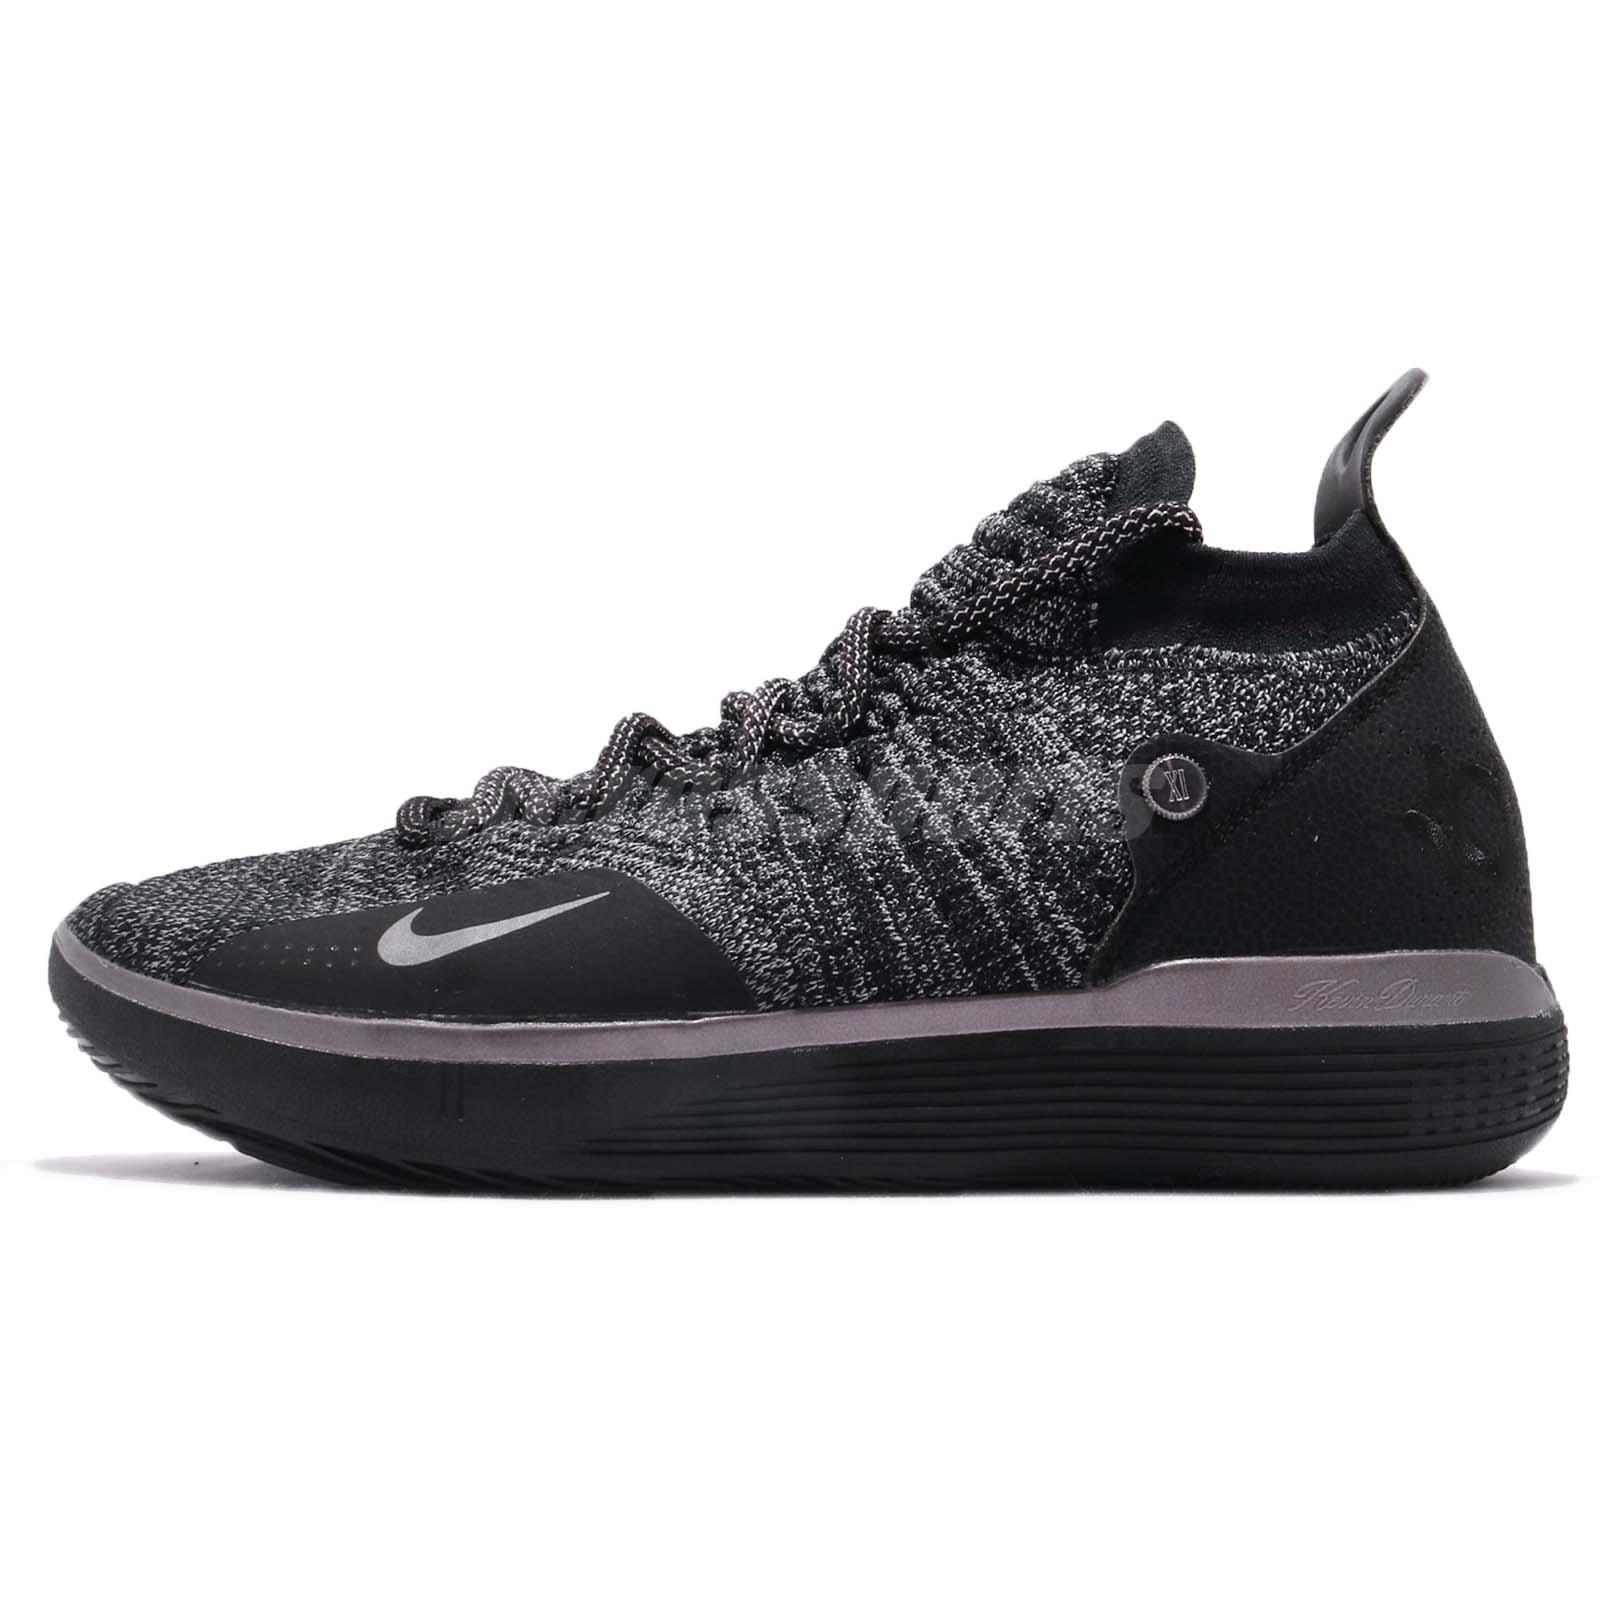 the latest 1115b 8bac6 Nike Zoom KD11 EP XI Kevin Durant Black Twilight Pulse Men Shoes AO2605-005